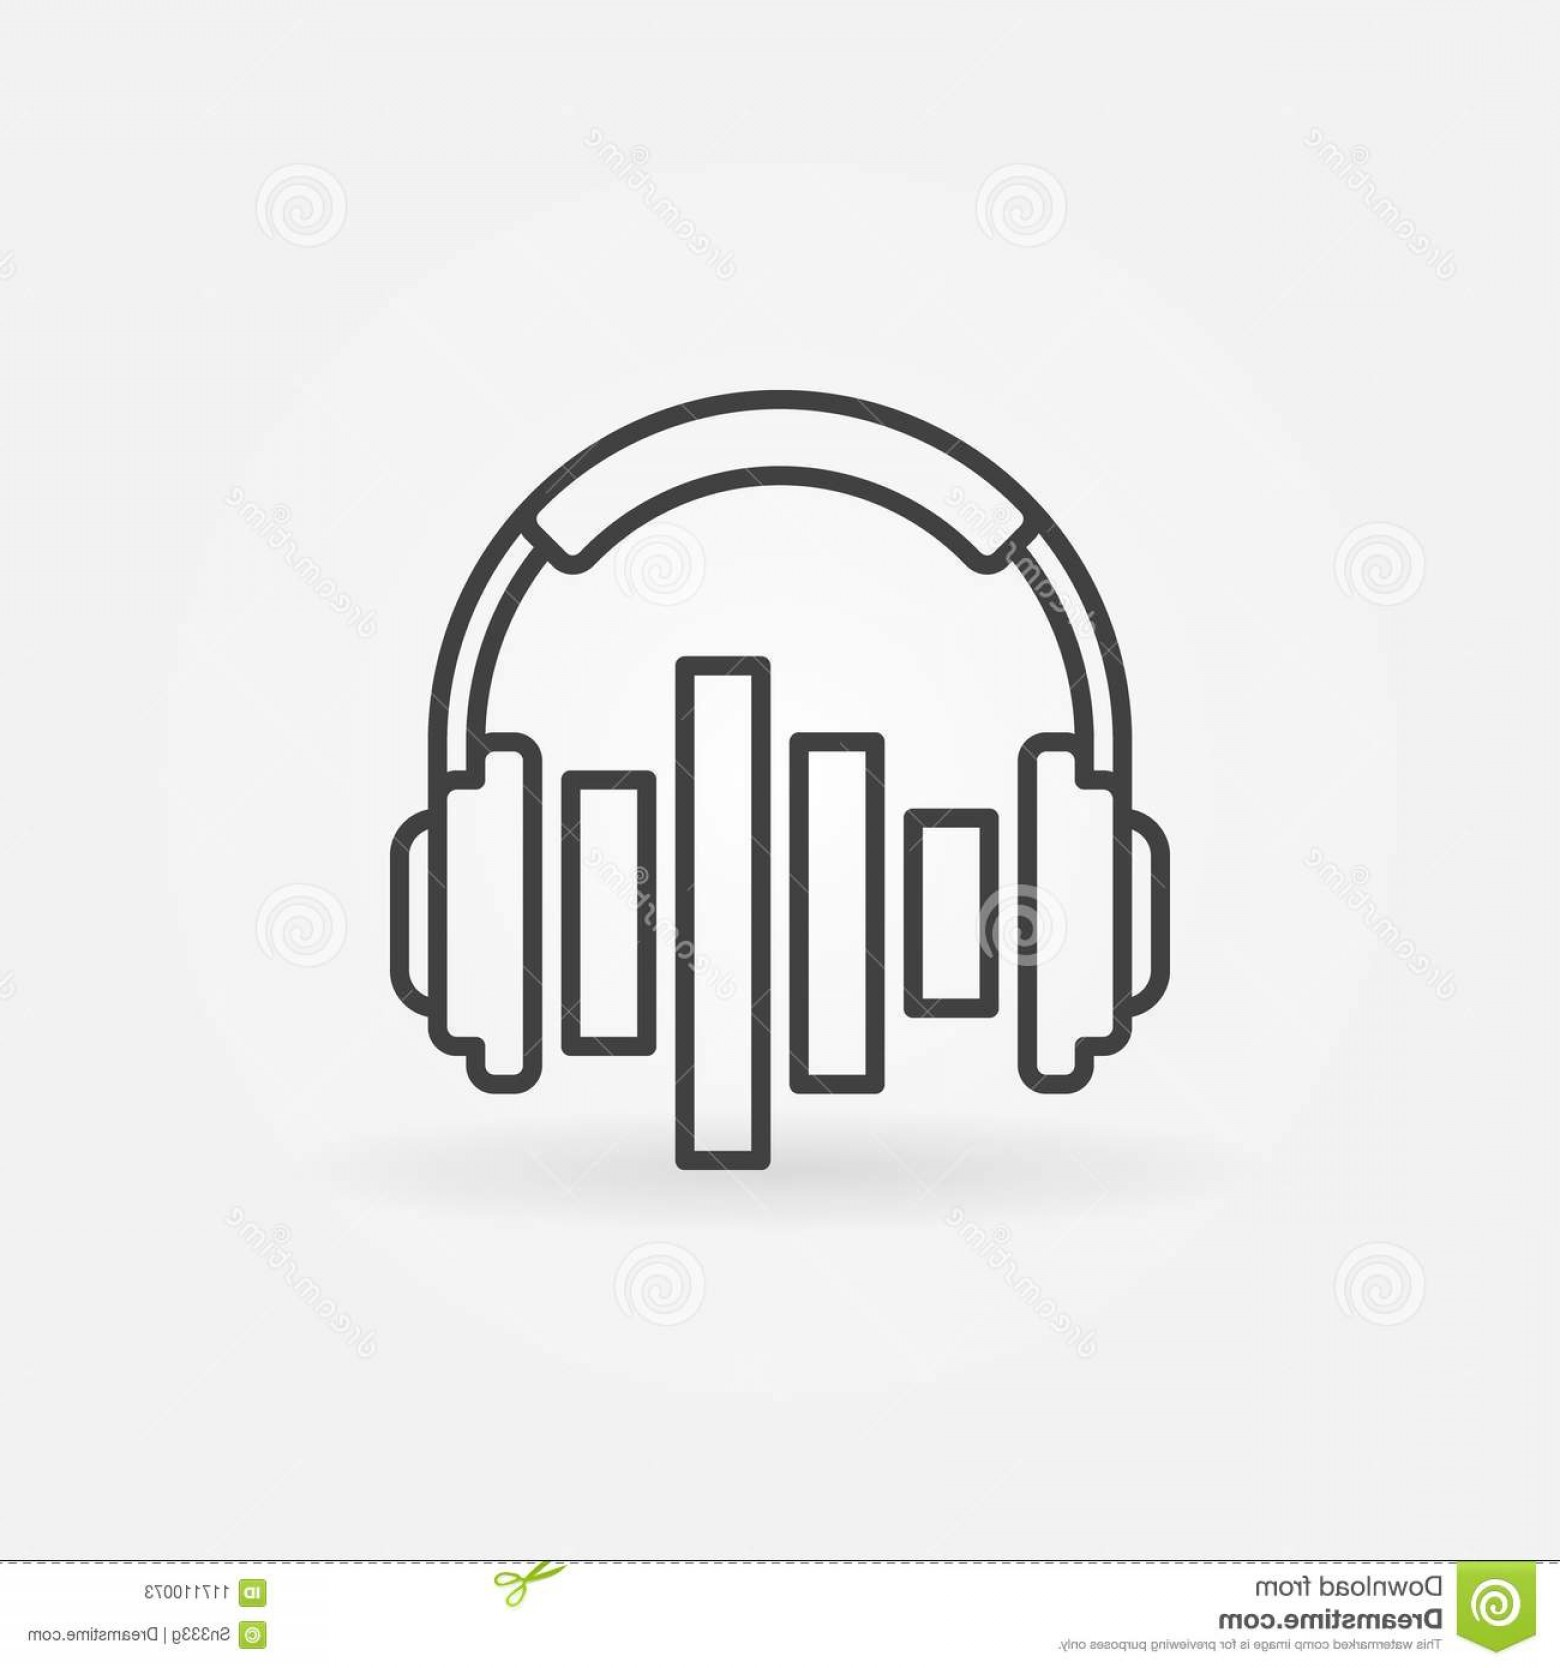 Equalizer Vector Icons: Music Headphones Equalizer Vector Concept Icon Design Element Outline Style Music Headphones Equalizer Vector Icon Image